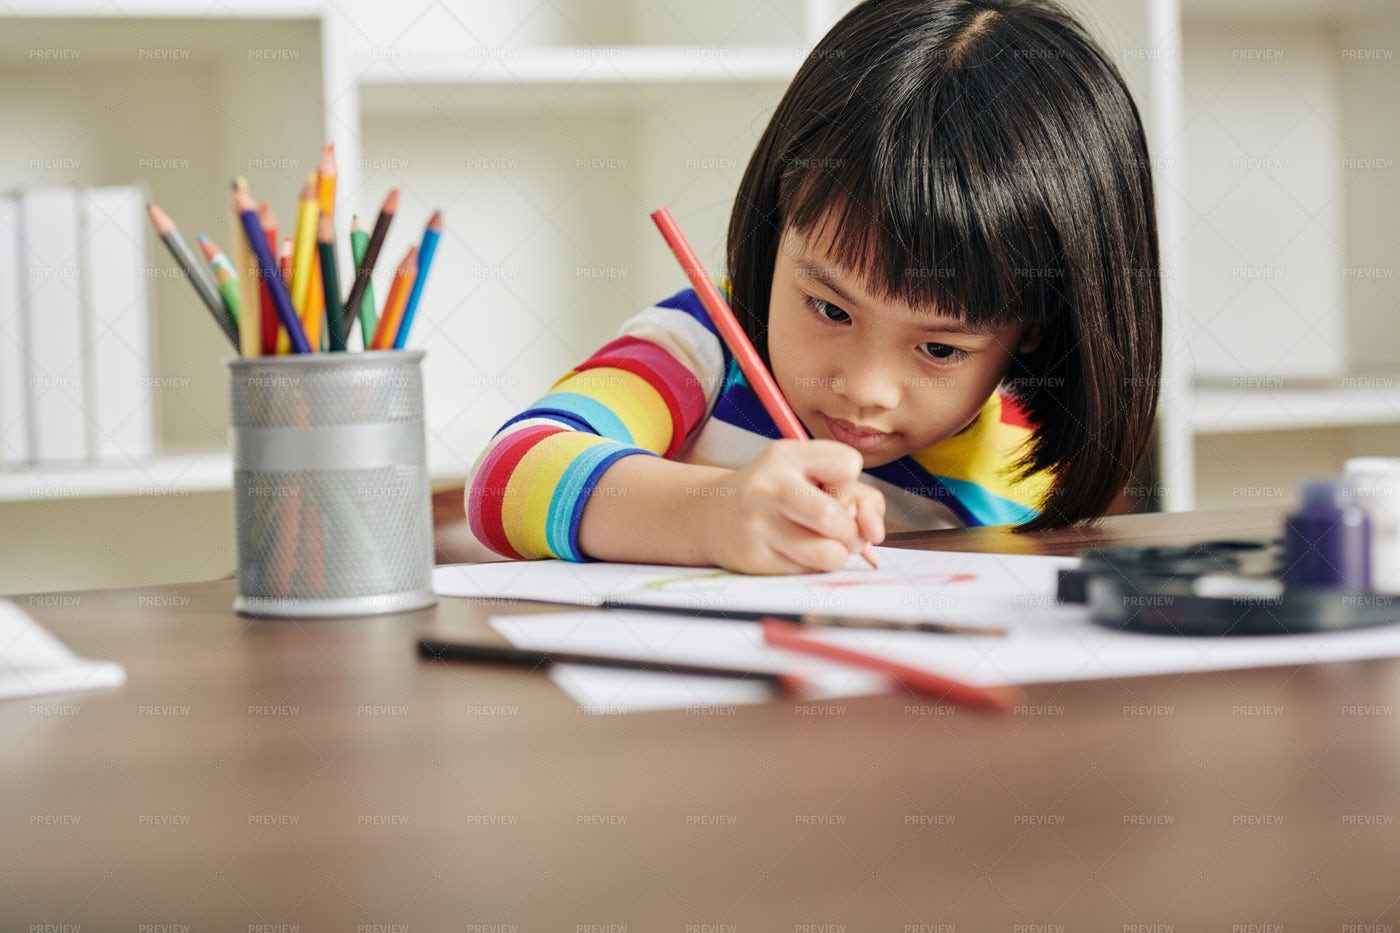 Little Girl Drawing: Stock Photos